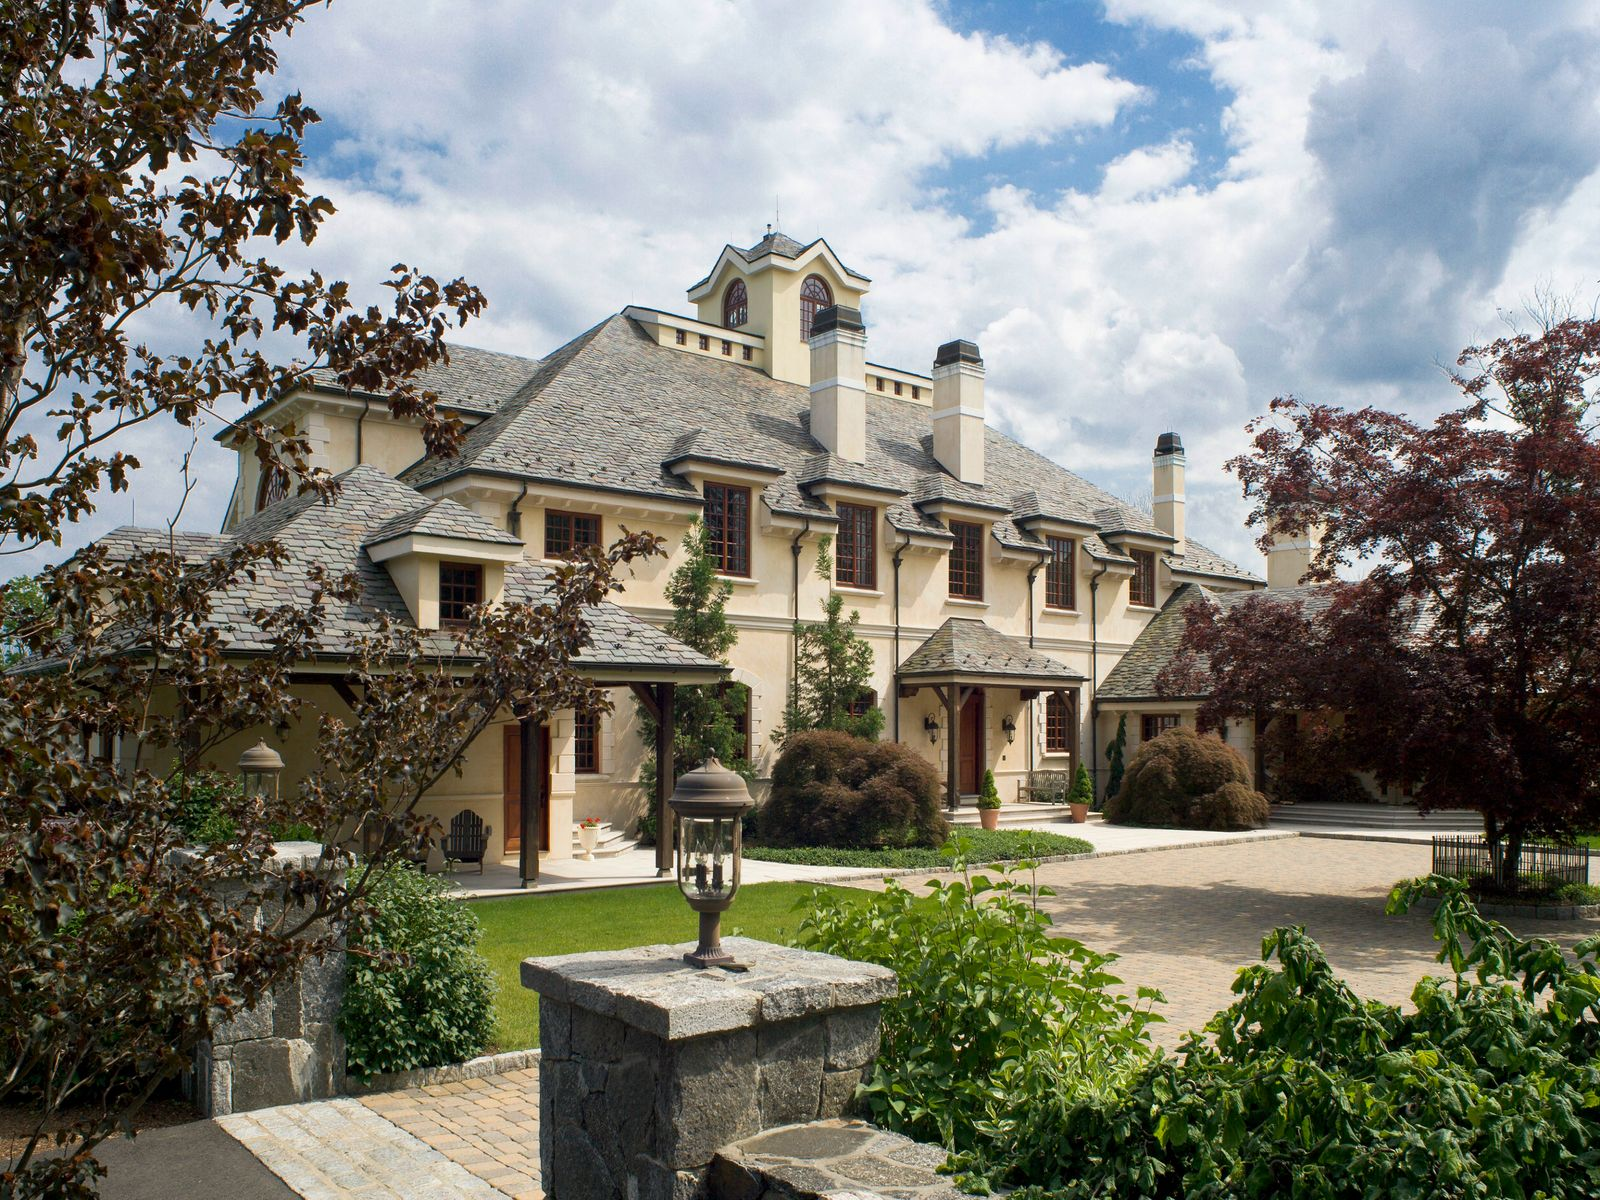 Hillcrest Estate, Greenwich CT Single Family Home - Greenwich Real Estate